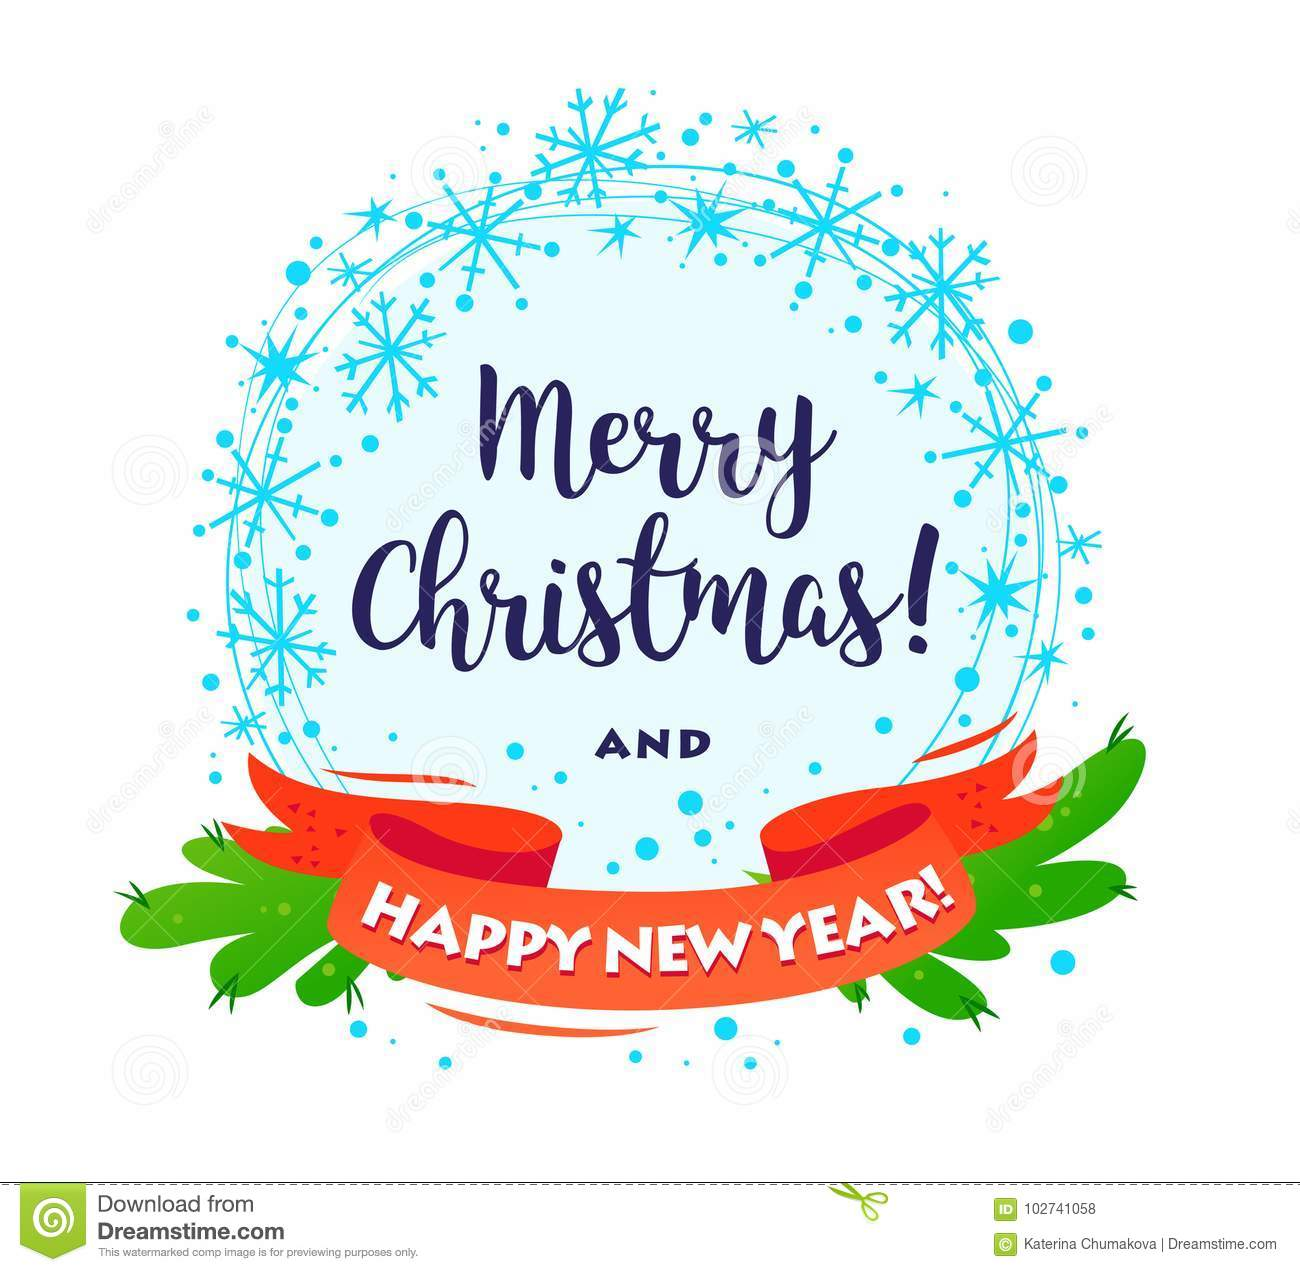 vector merry christmas happy new year decorated wreath with congratulation isolated on white background stock vector illustration of banner decoration 102741058 https www dreamstime com vector merry christmas happy new year decorated wreath congratulation isolated white background cartoon style illustration image102741058